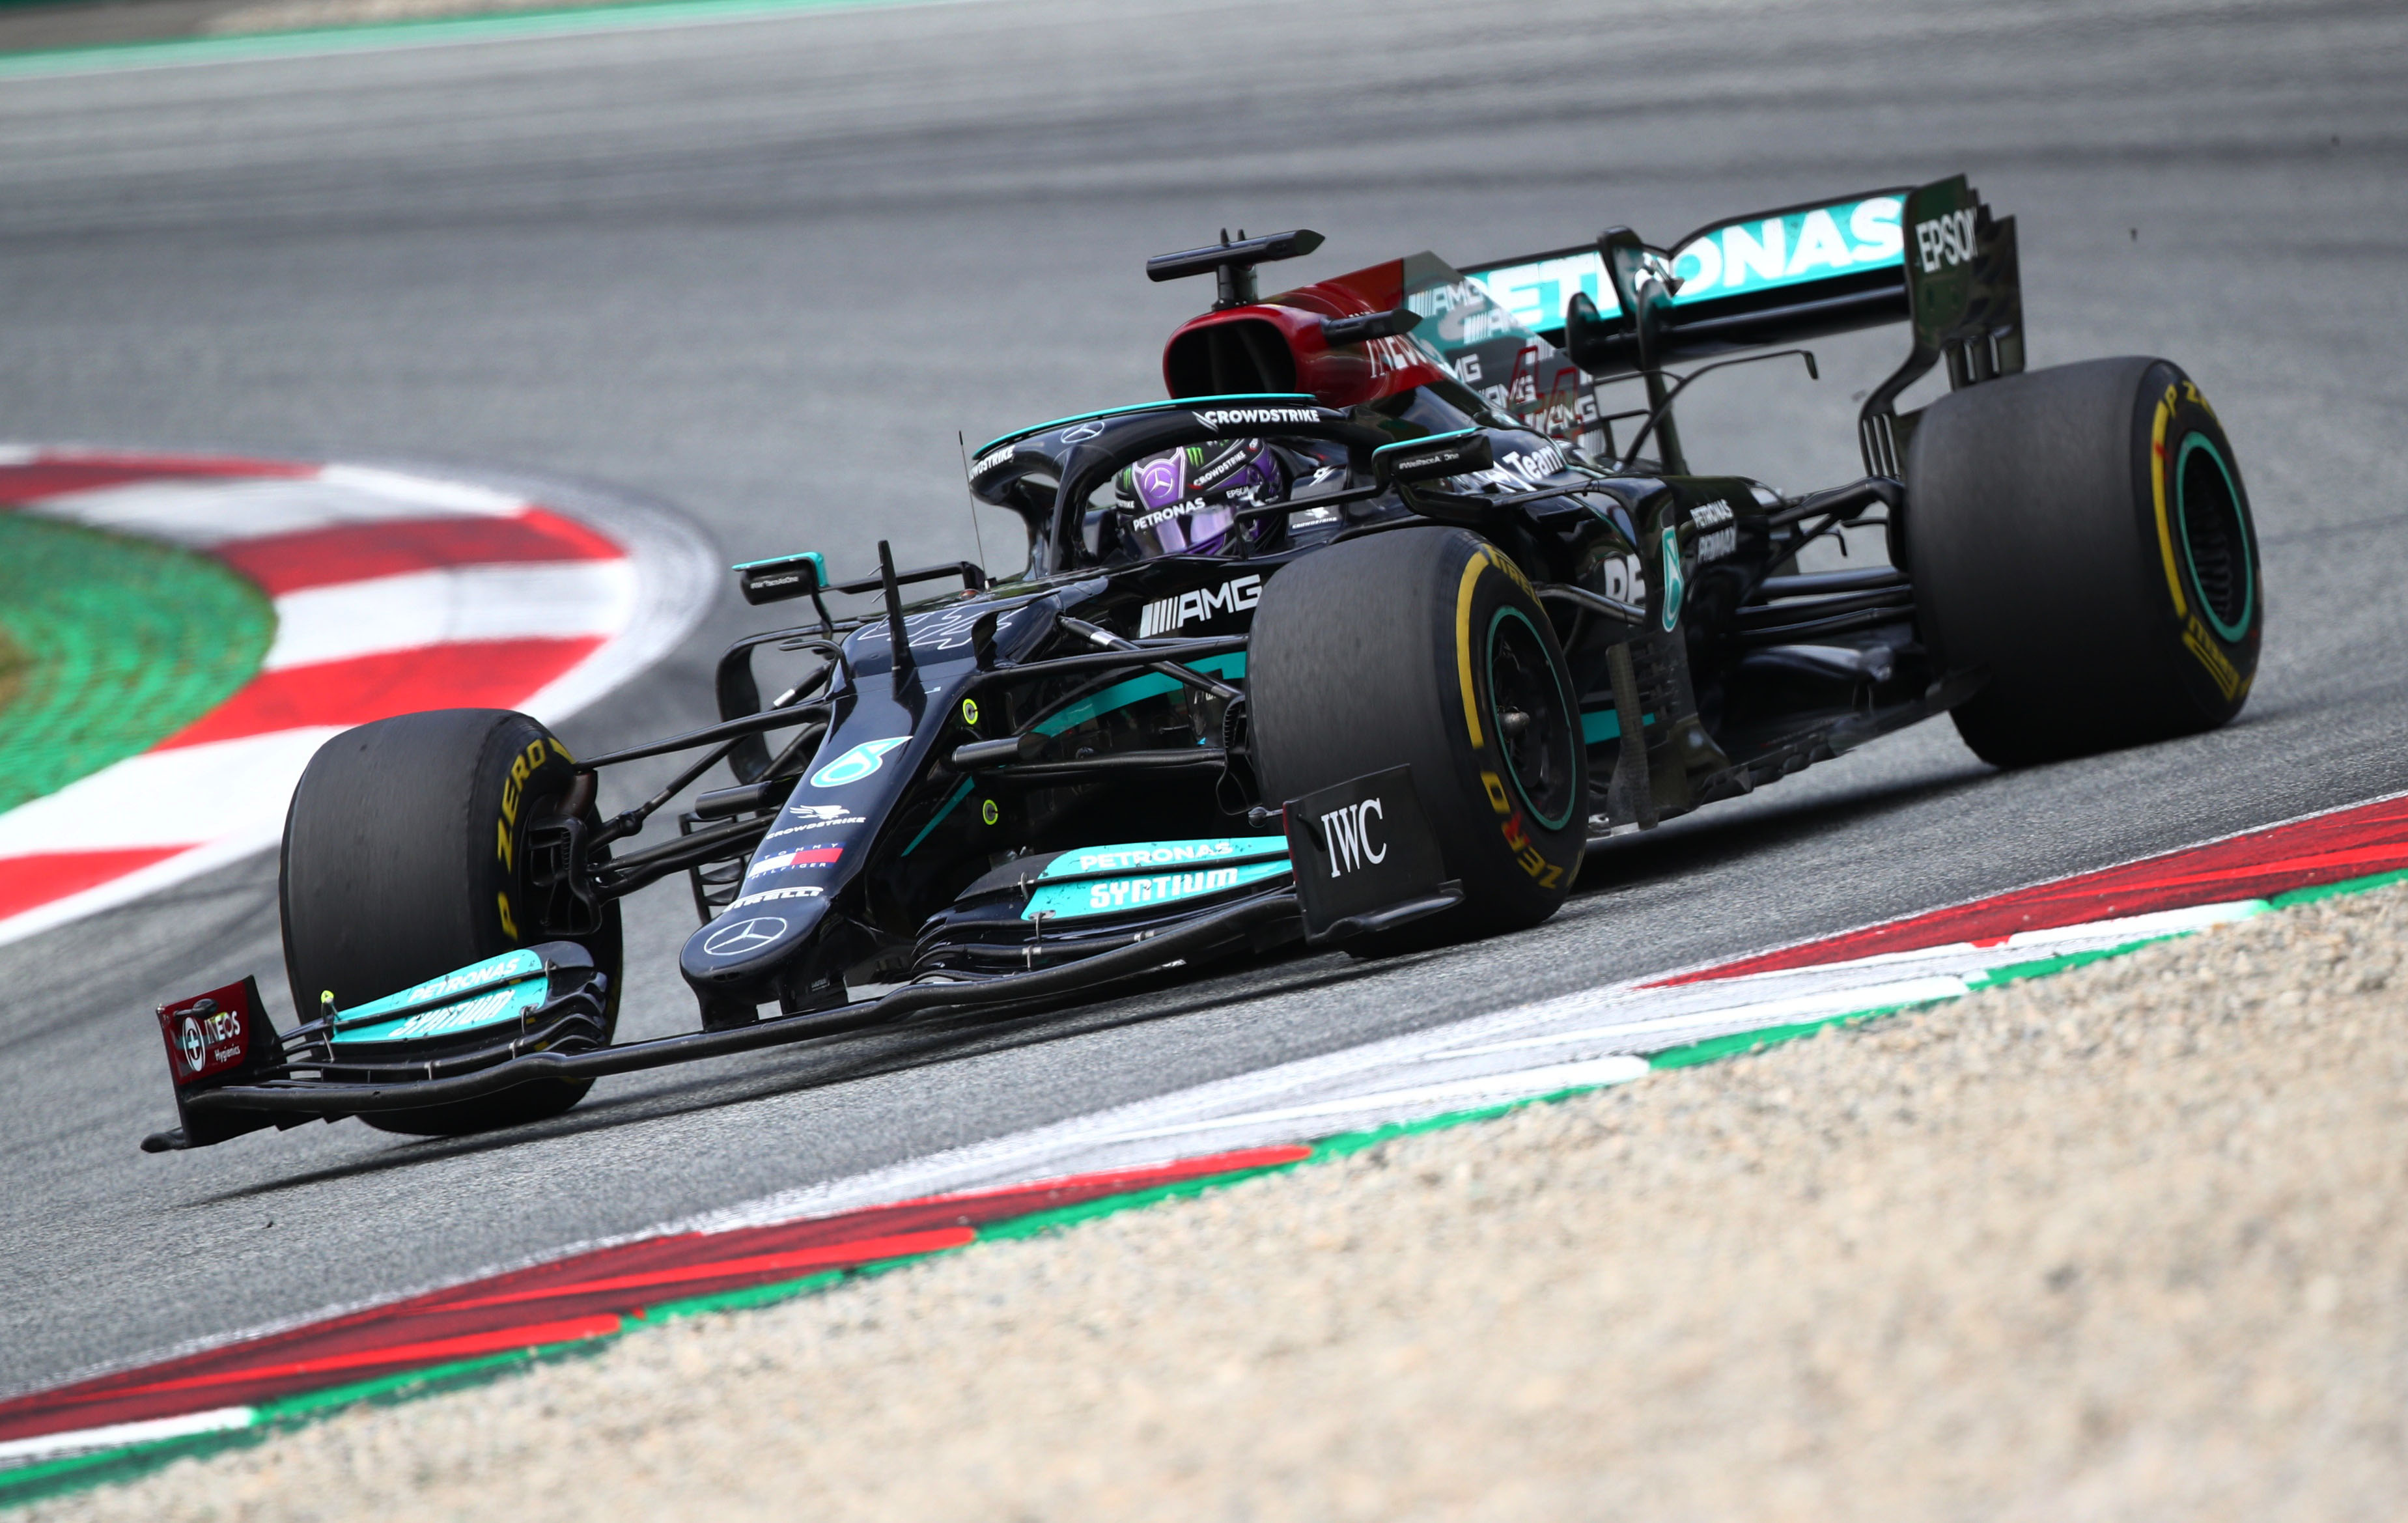 Formula One F1 - Austrian Grand Prix - Red Bull Ring, Spielberg, Styria, Austria - July 4, 2021 Mercedes' Lewis Hamilton during the race REUTERS/Lisi Niesner